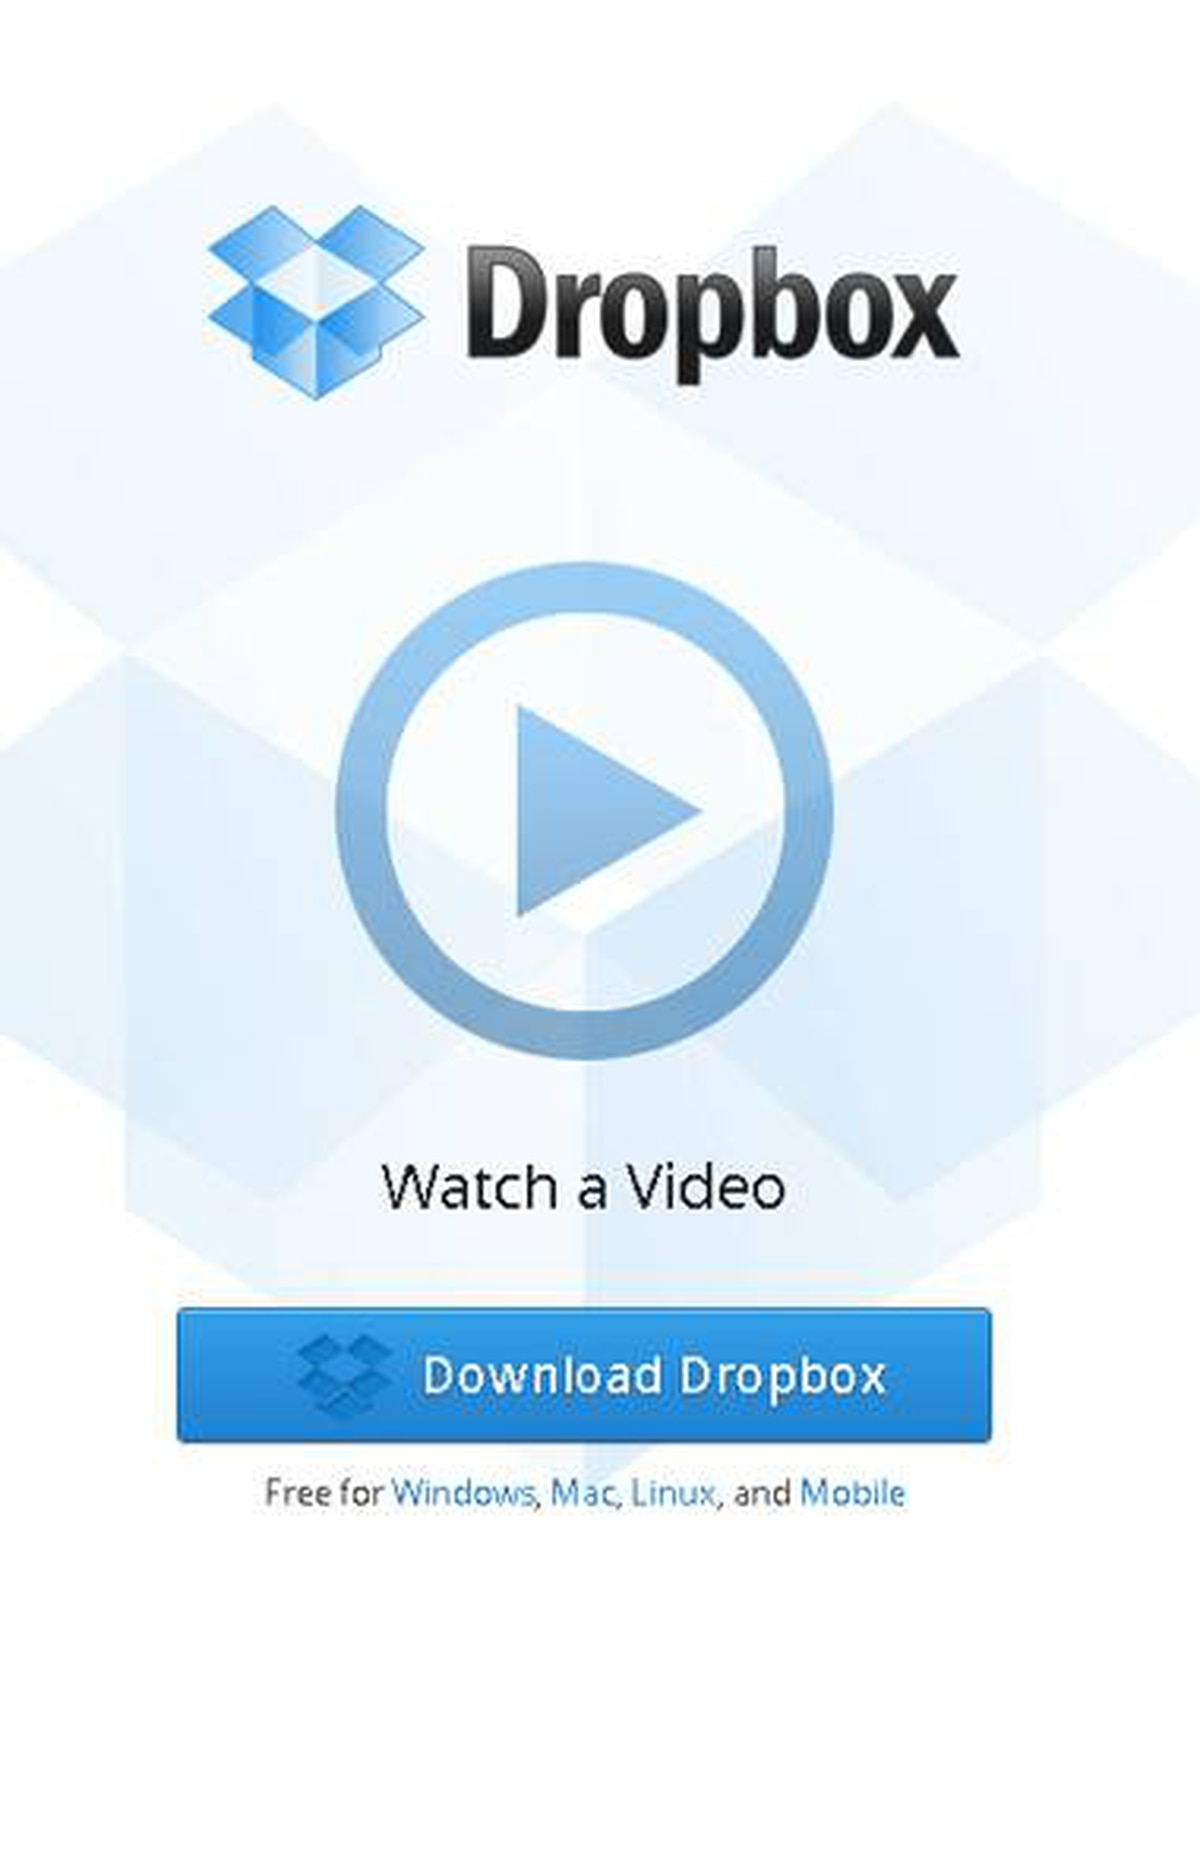 DROPBOX WHAT: A service that allows users to store and share files easily online. Like Evernote, Dropbox could be a good acquisition for a company that has fallen behind in cloud-based services, but it would be a lot more expensive. FUNDING: $257-million from Index Ventures, Greylock Partners, Sequoia Capital and others. Dropbox's last funding round in October valued the company at around $4-billion, according to media reports. KEY FACT: 1 billion files are saved every 3 days on the service, the company says. WHO ARE THESE GUYS: Co-founders Drew Houston and Arash Ferdowsi both attended MIT; Ferdowsi dropped out.